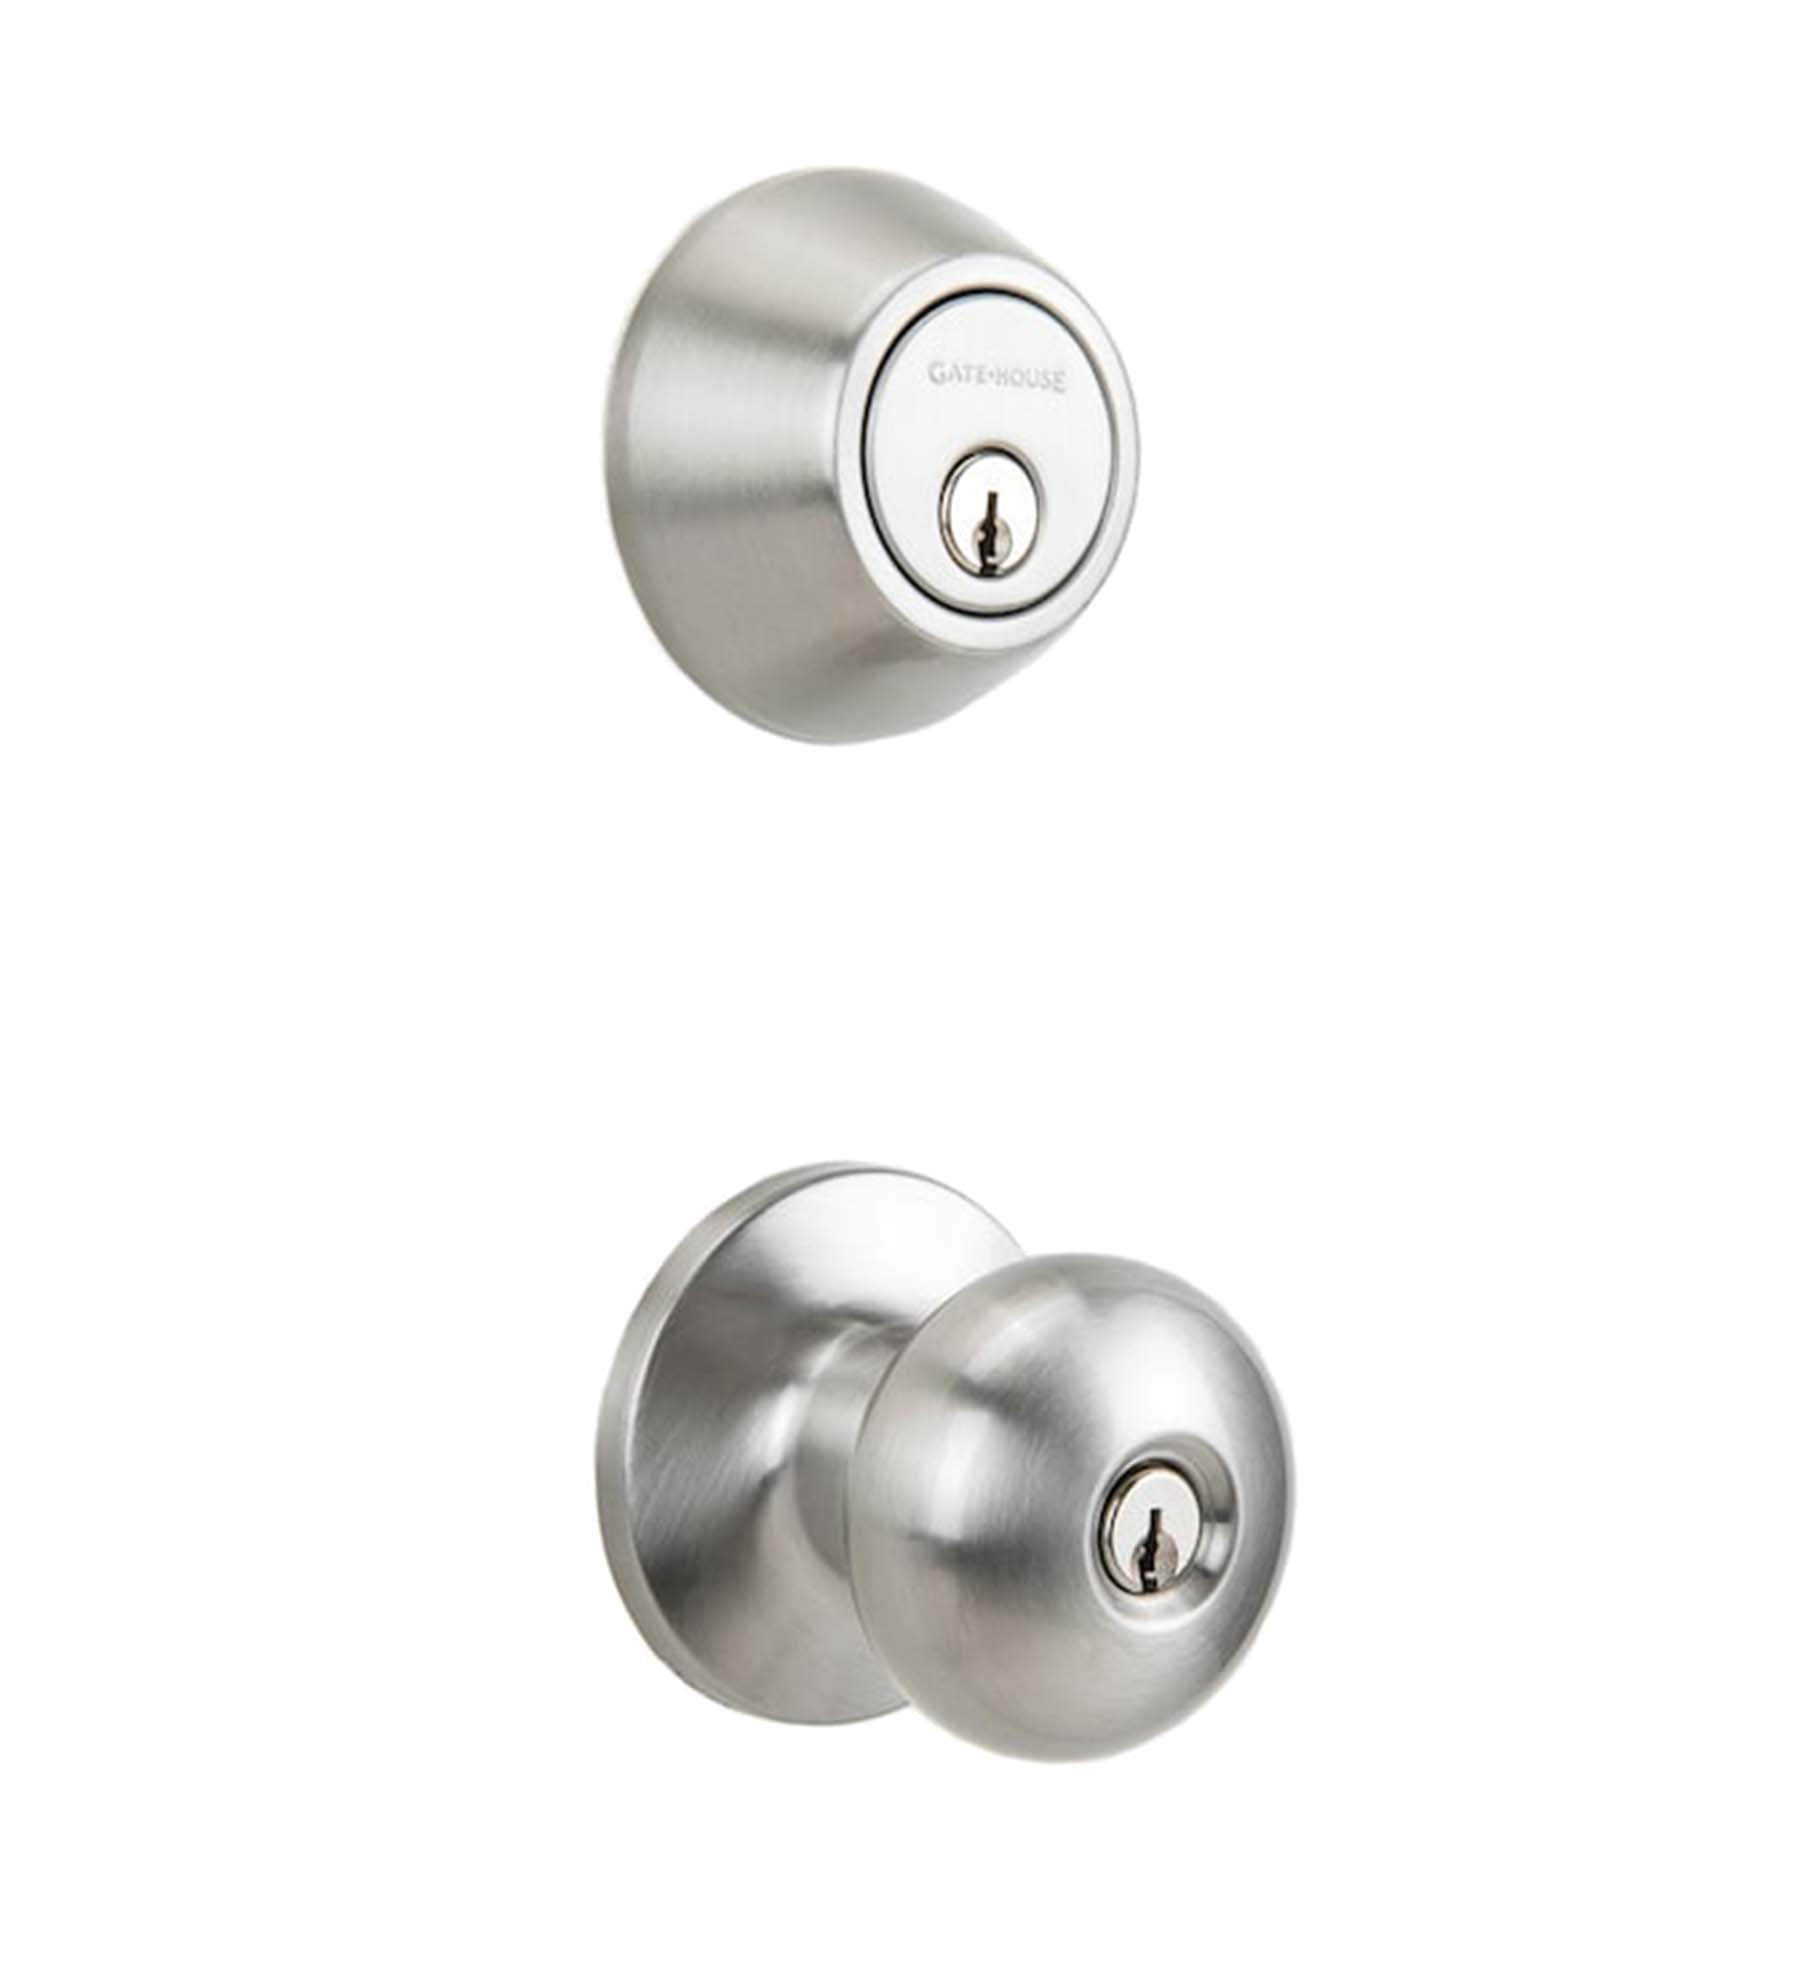 Gatehouse Single-Cylinder Knob and Deadbolt